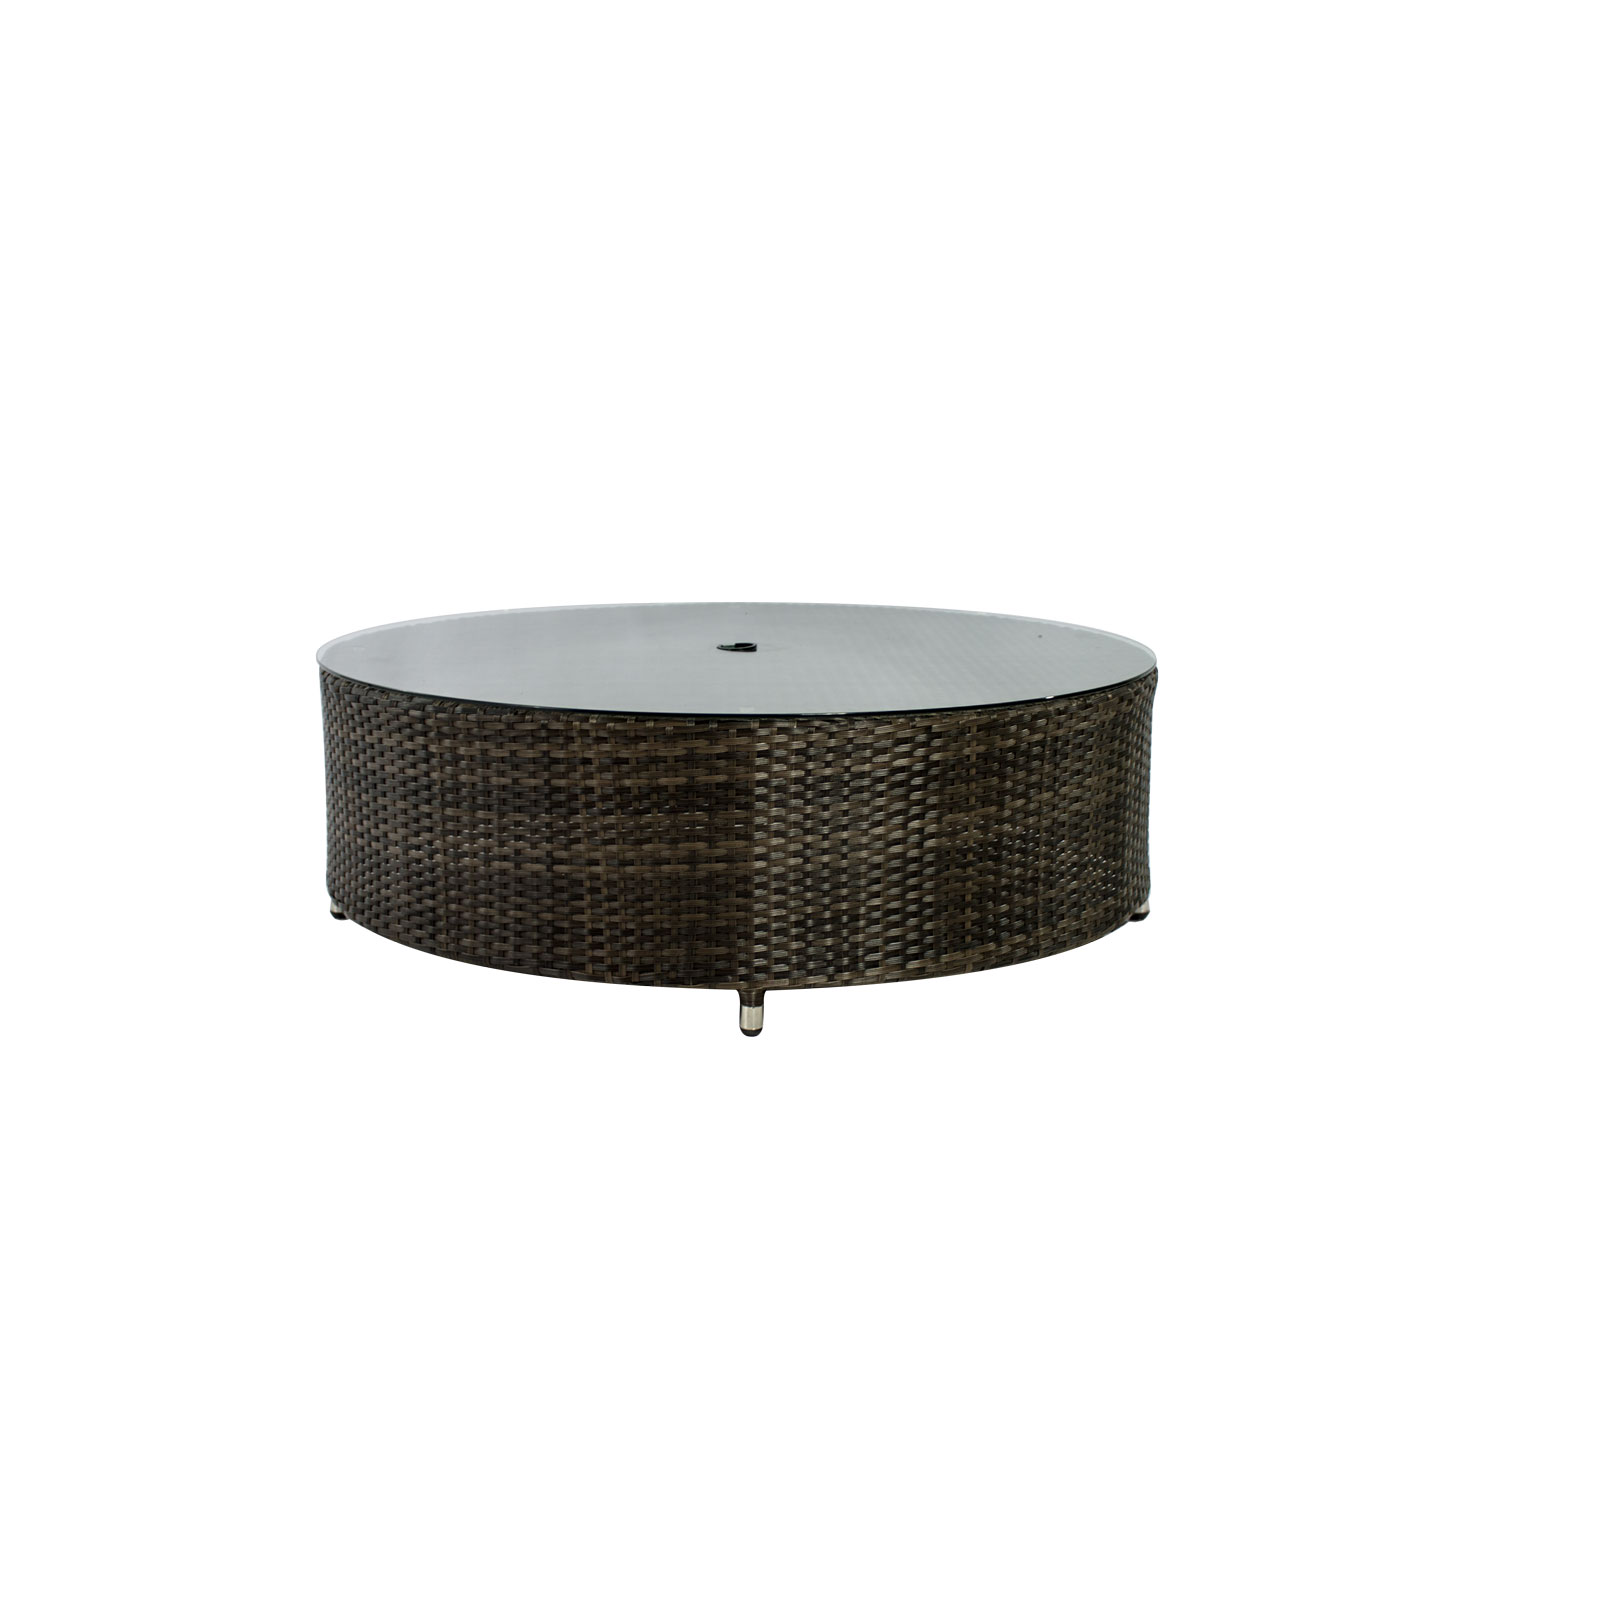 circa coffee table round with umbrella hole source furniture outdoor side red entryway rustic end accent storage cast aluminium garden black and brown tables corner curio cabinet